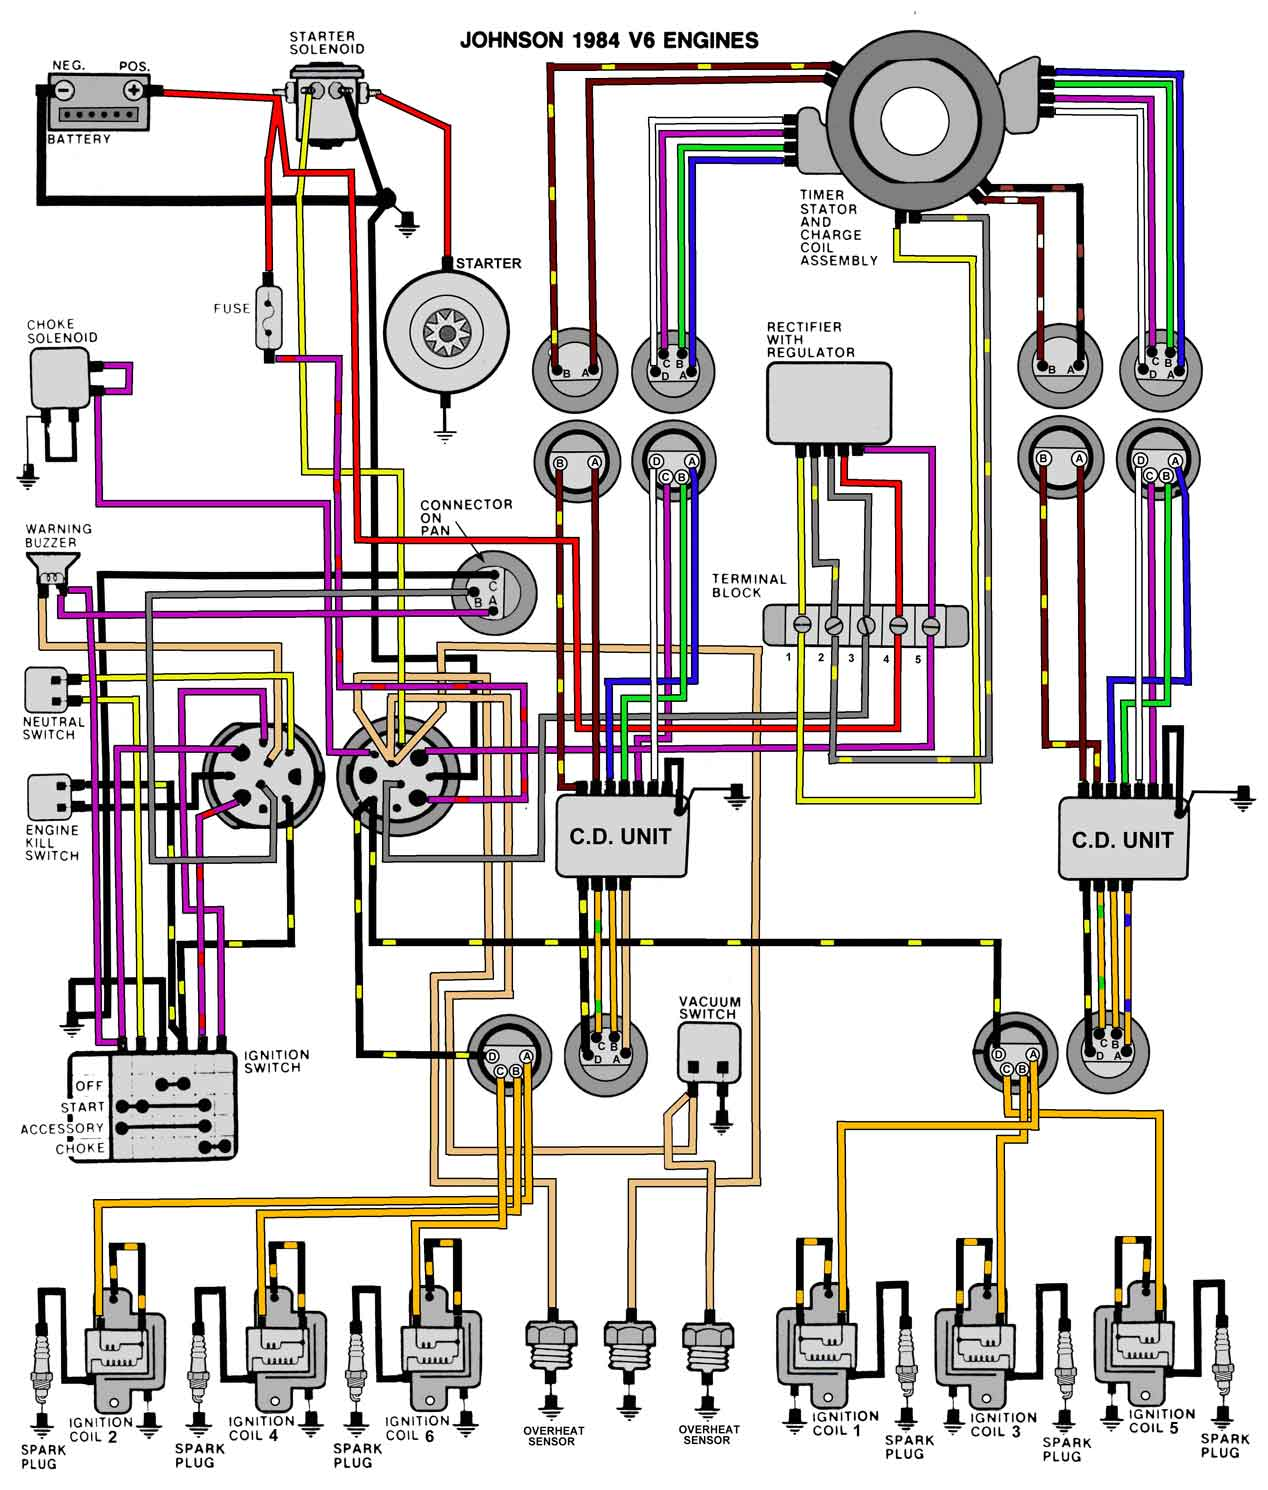 84_V6 johnson wiring harness diagram on johnson download wirning diagrams marine engine wiring harness at gsmx.co